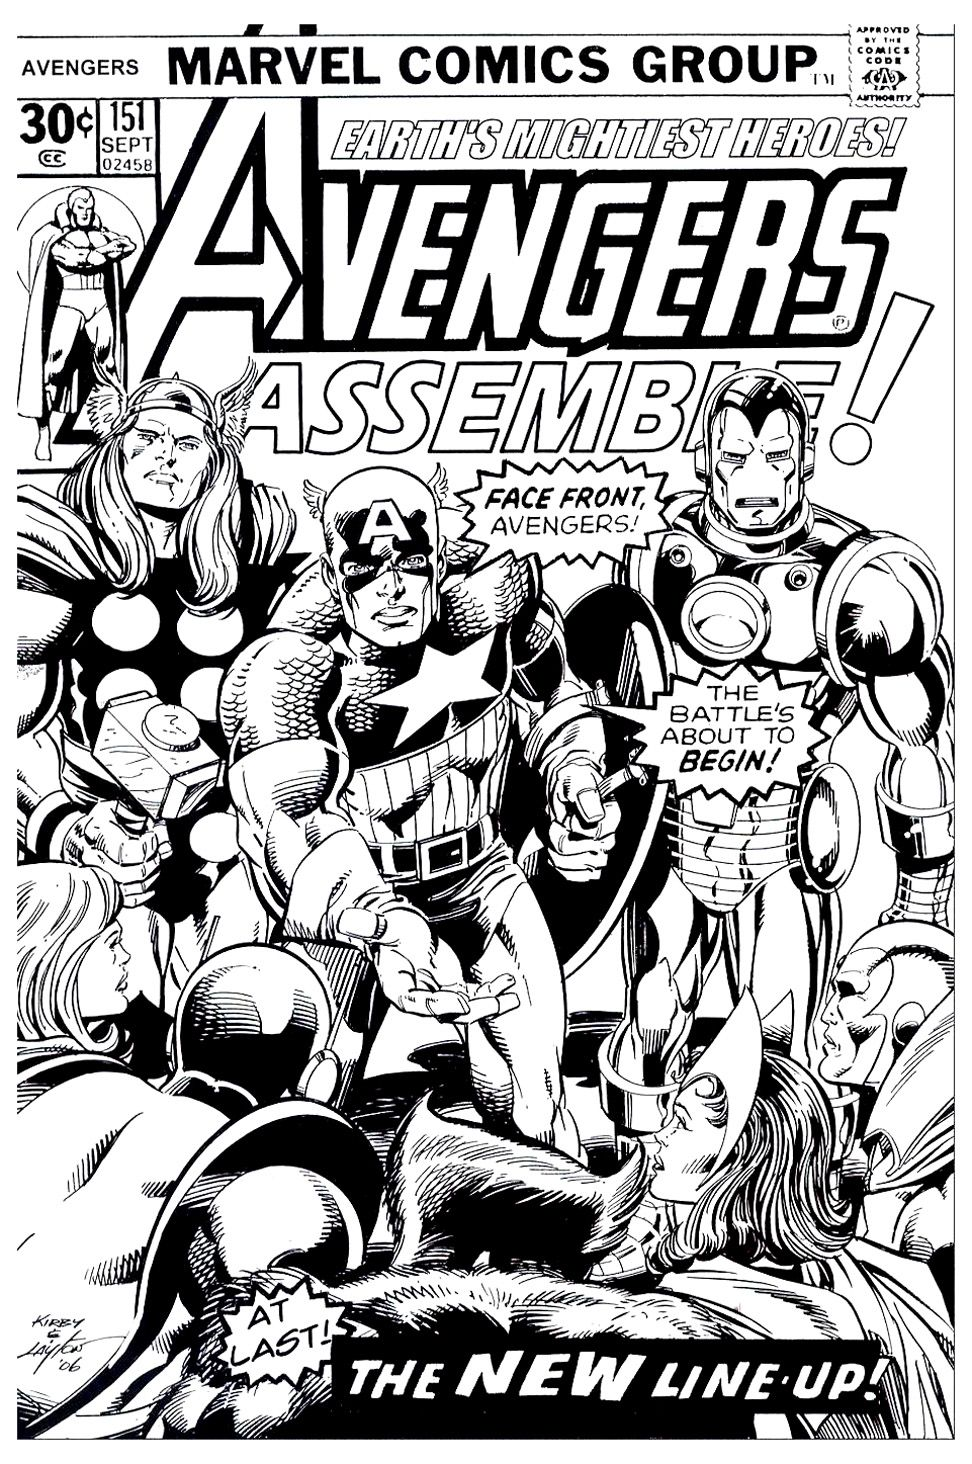 Avengers Movie Poster The Super Heroes Captain America Iron Man Thor From The Avengers Comics Avengers Coloring Avengers Coloring Pages Marvel Coloring